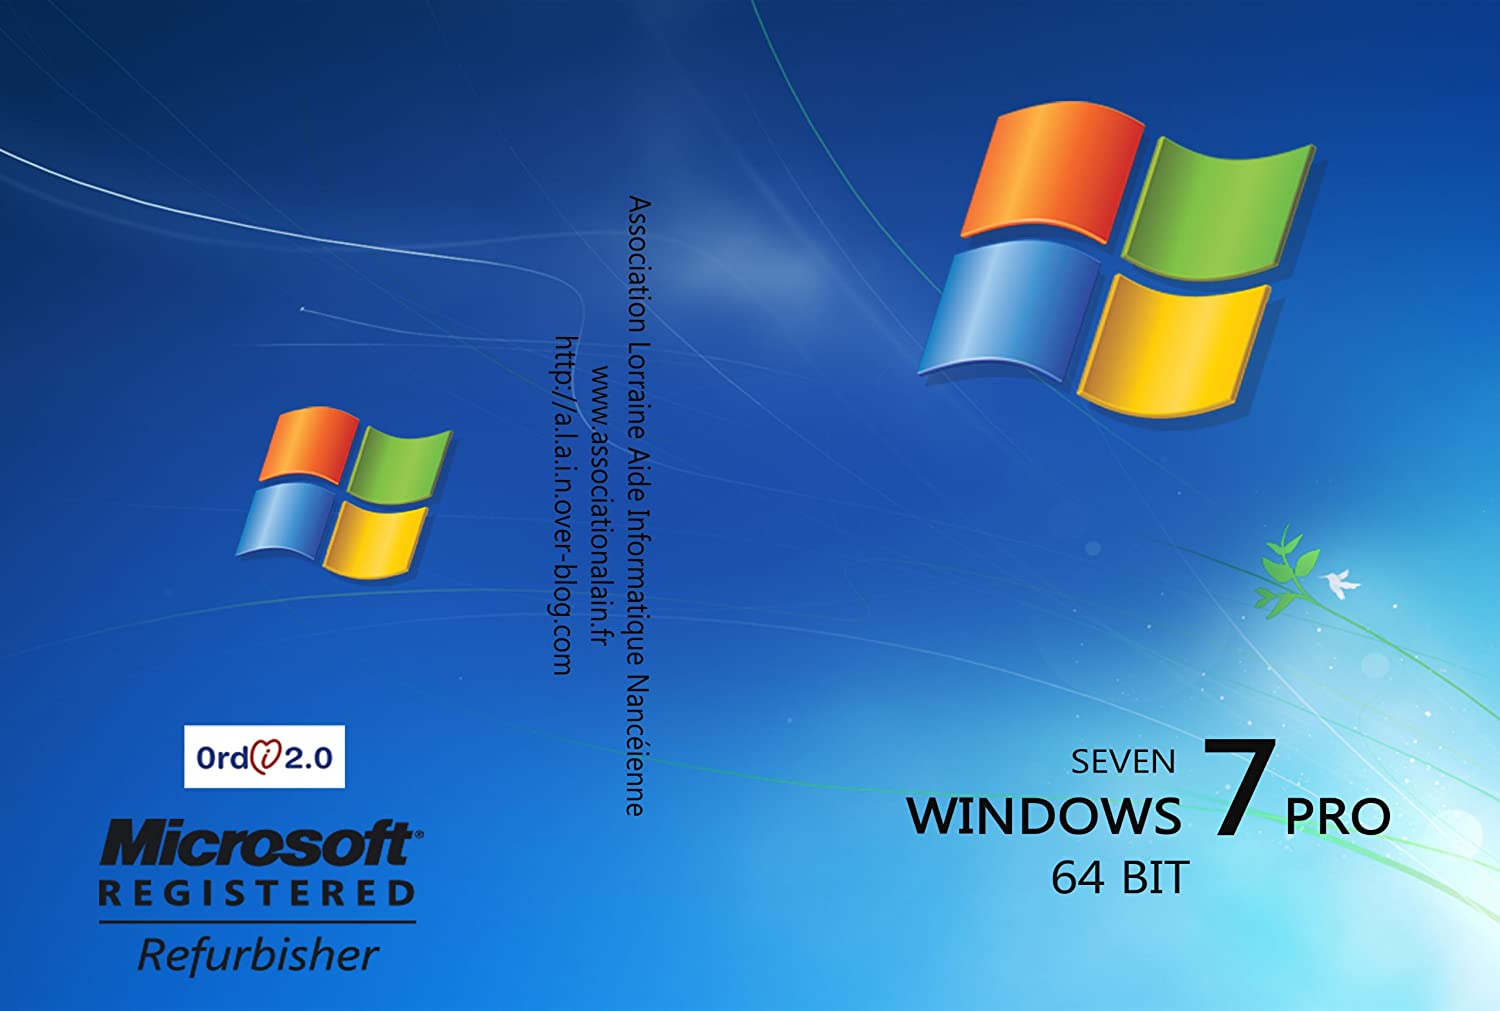 windows 7 professional service pack 1 serial number